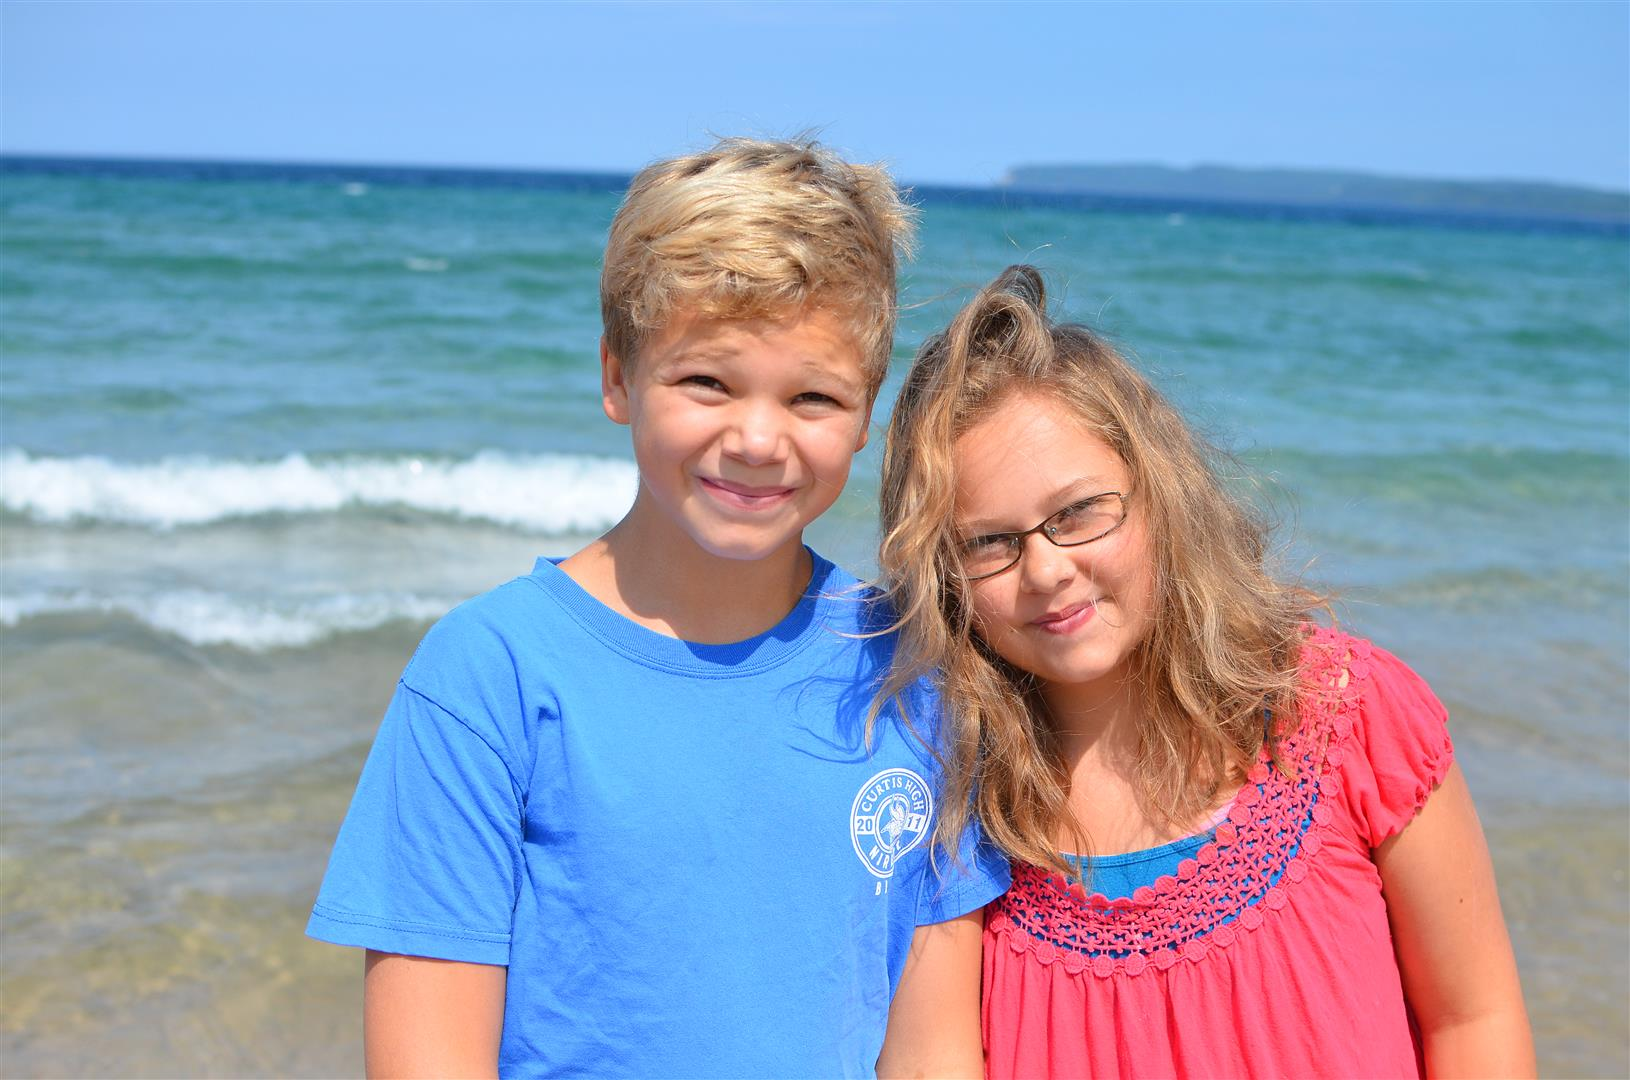 David and Sarah - the last of my homeschooling kiddos!